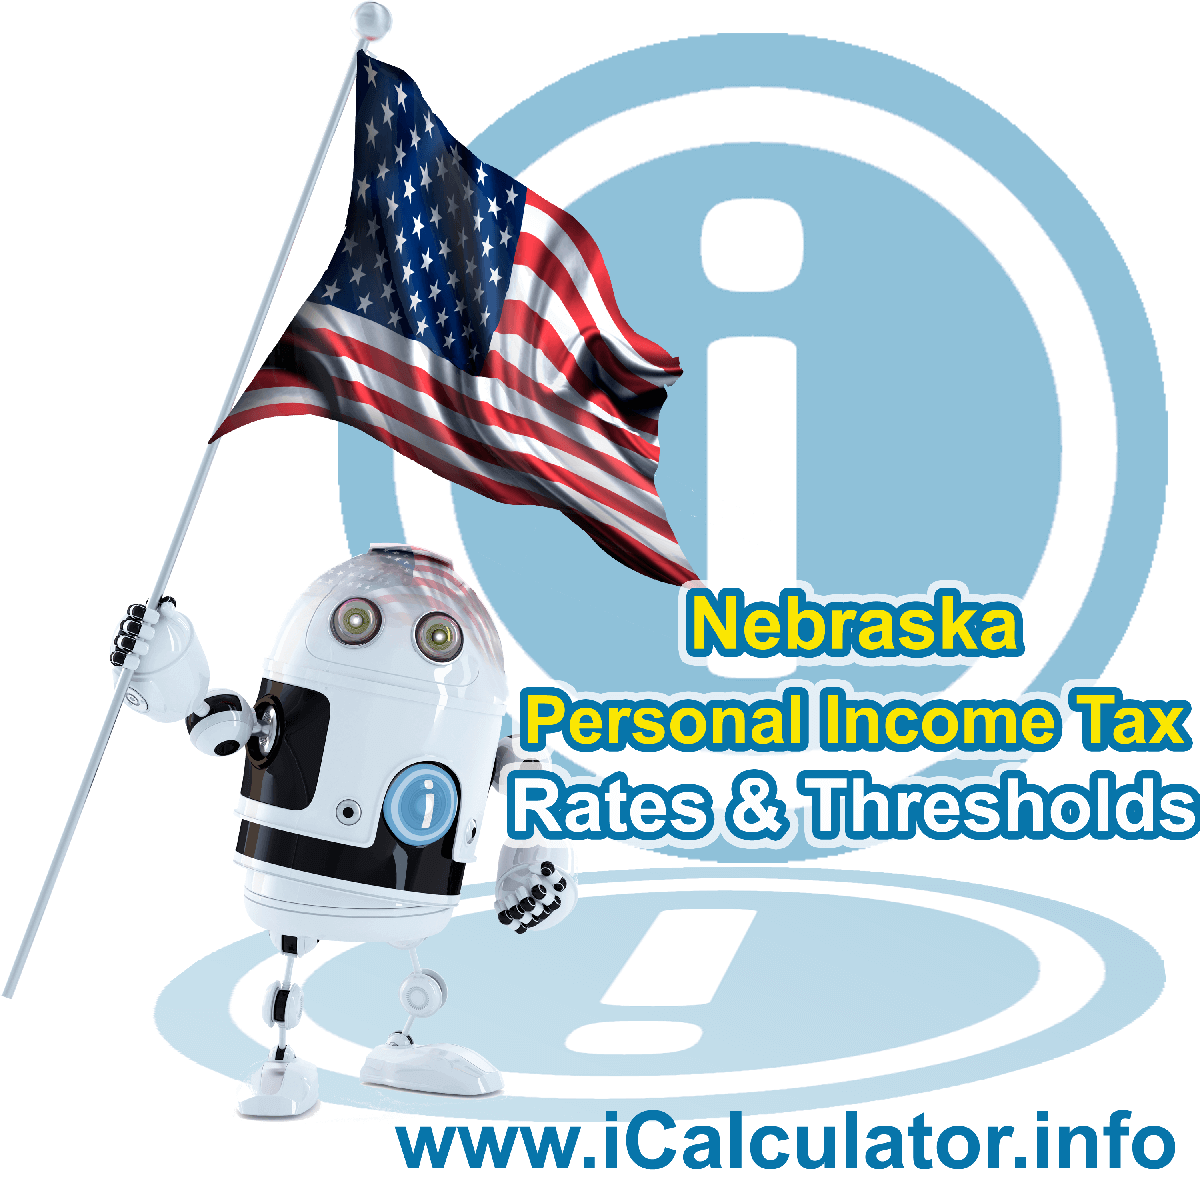 Nebraska State Tax Tables 2013. This image displays details of the Nebraska State Tax Tables for the 2013 tax return year which is provided in support of the 2013 US Tax Calculator